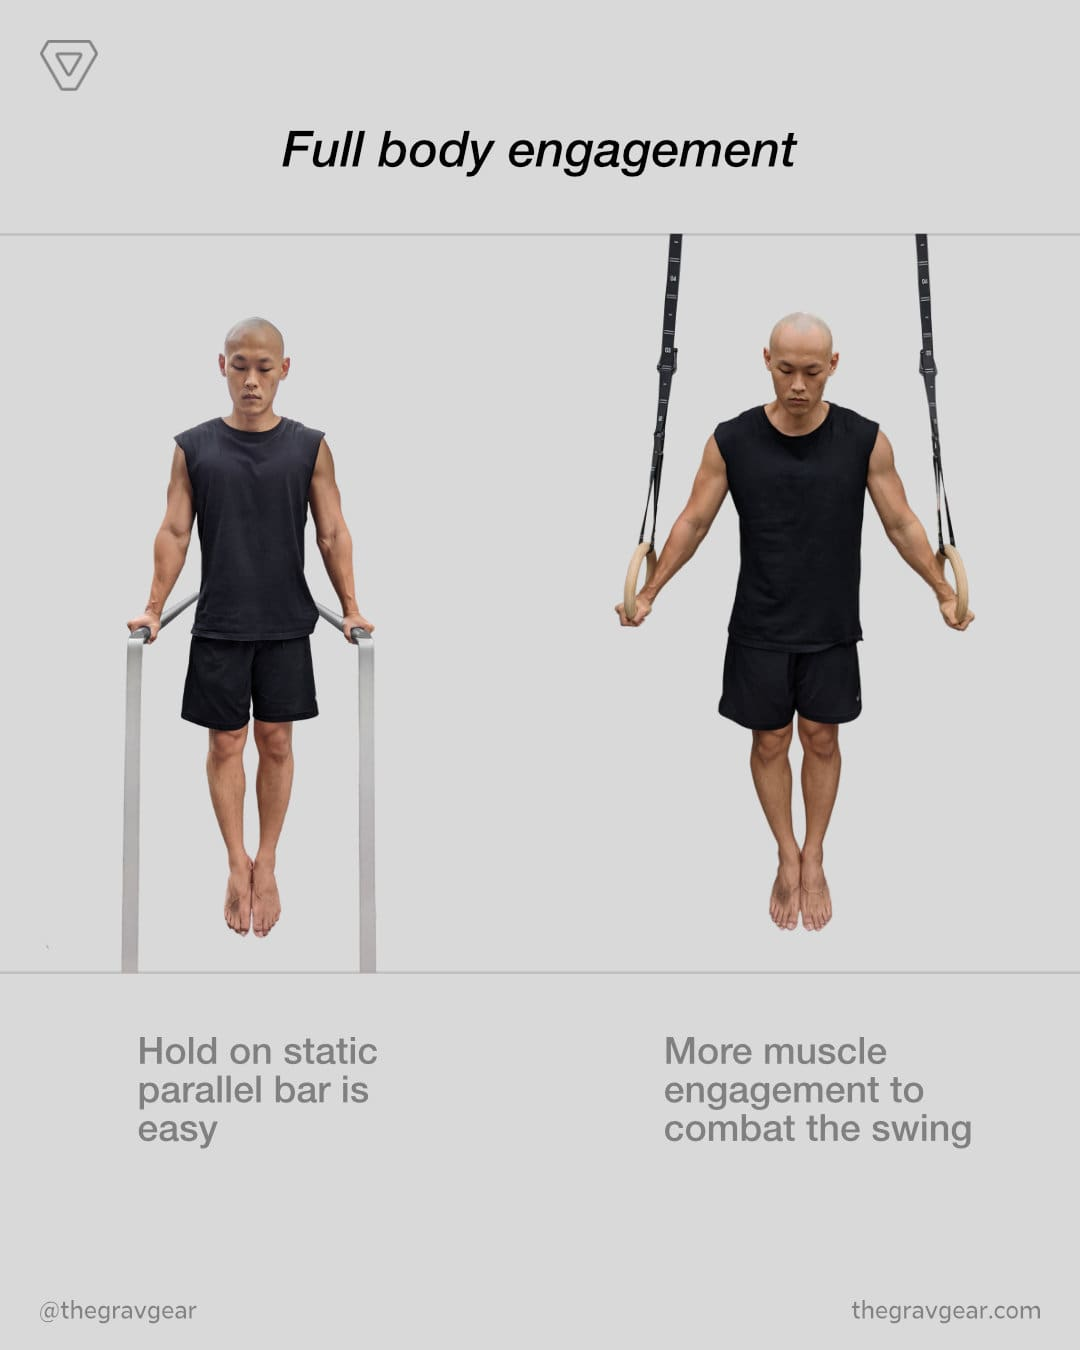 grav gymnastic rings by gravgear are engaging full body